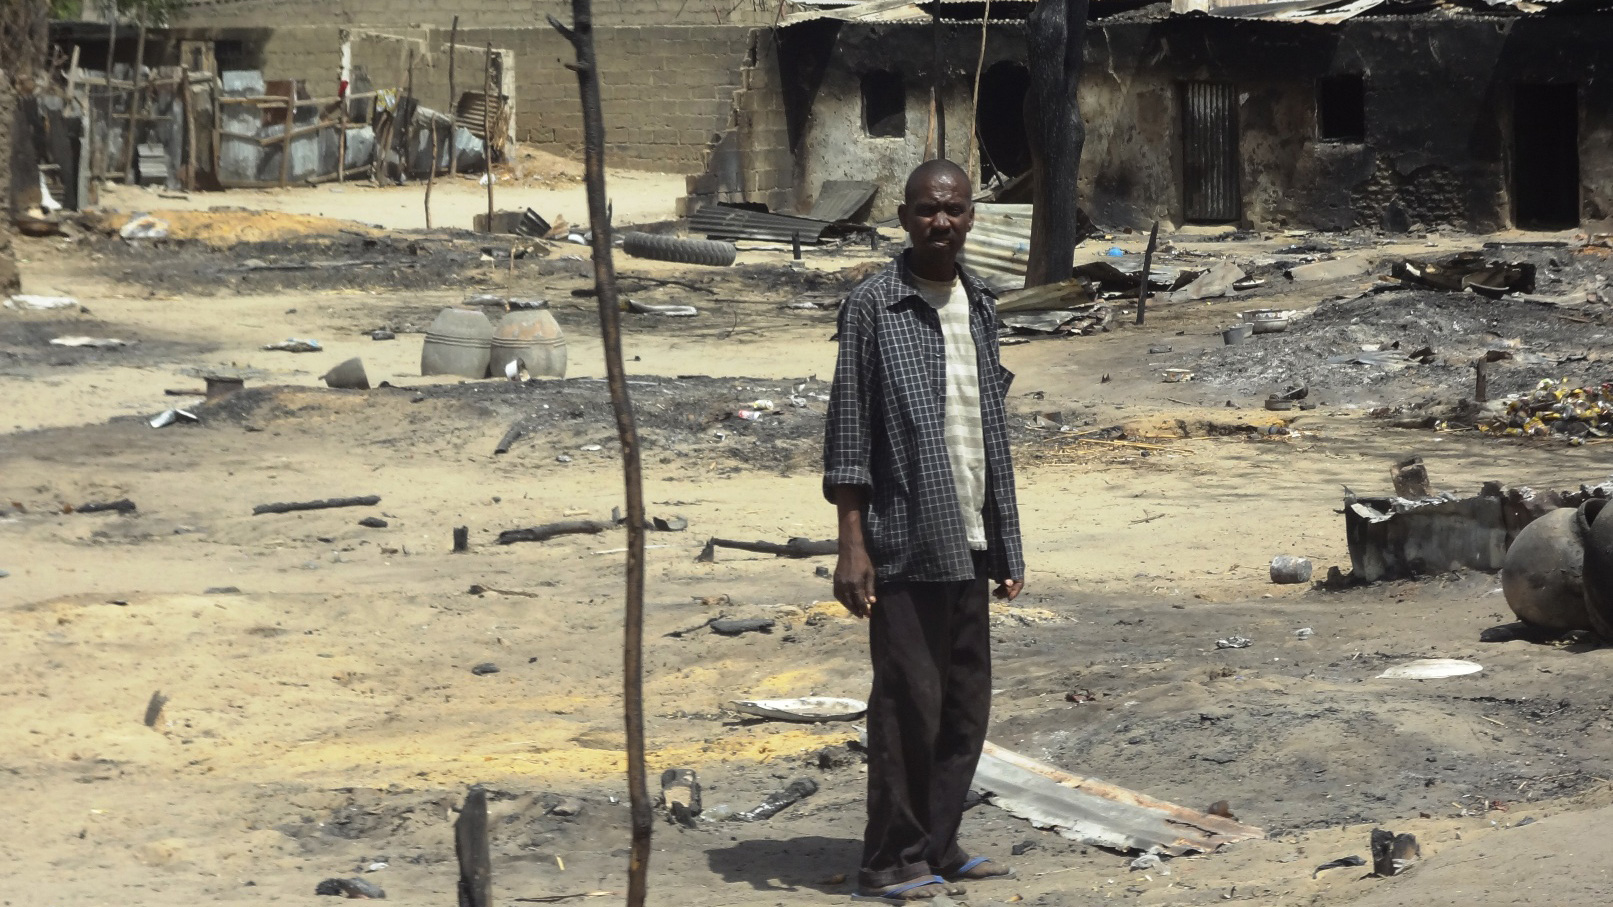 A man stands outside his destroyed home in Baga, Borno State, northeastern Nigeria, following heavy fighting between military forces from Nigeria, Niger and Chad, and Boko Haram in which some 187 people are estimated to have died